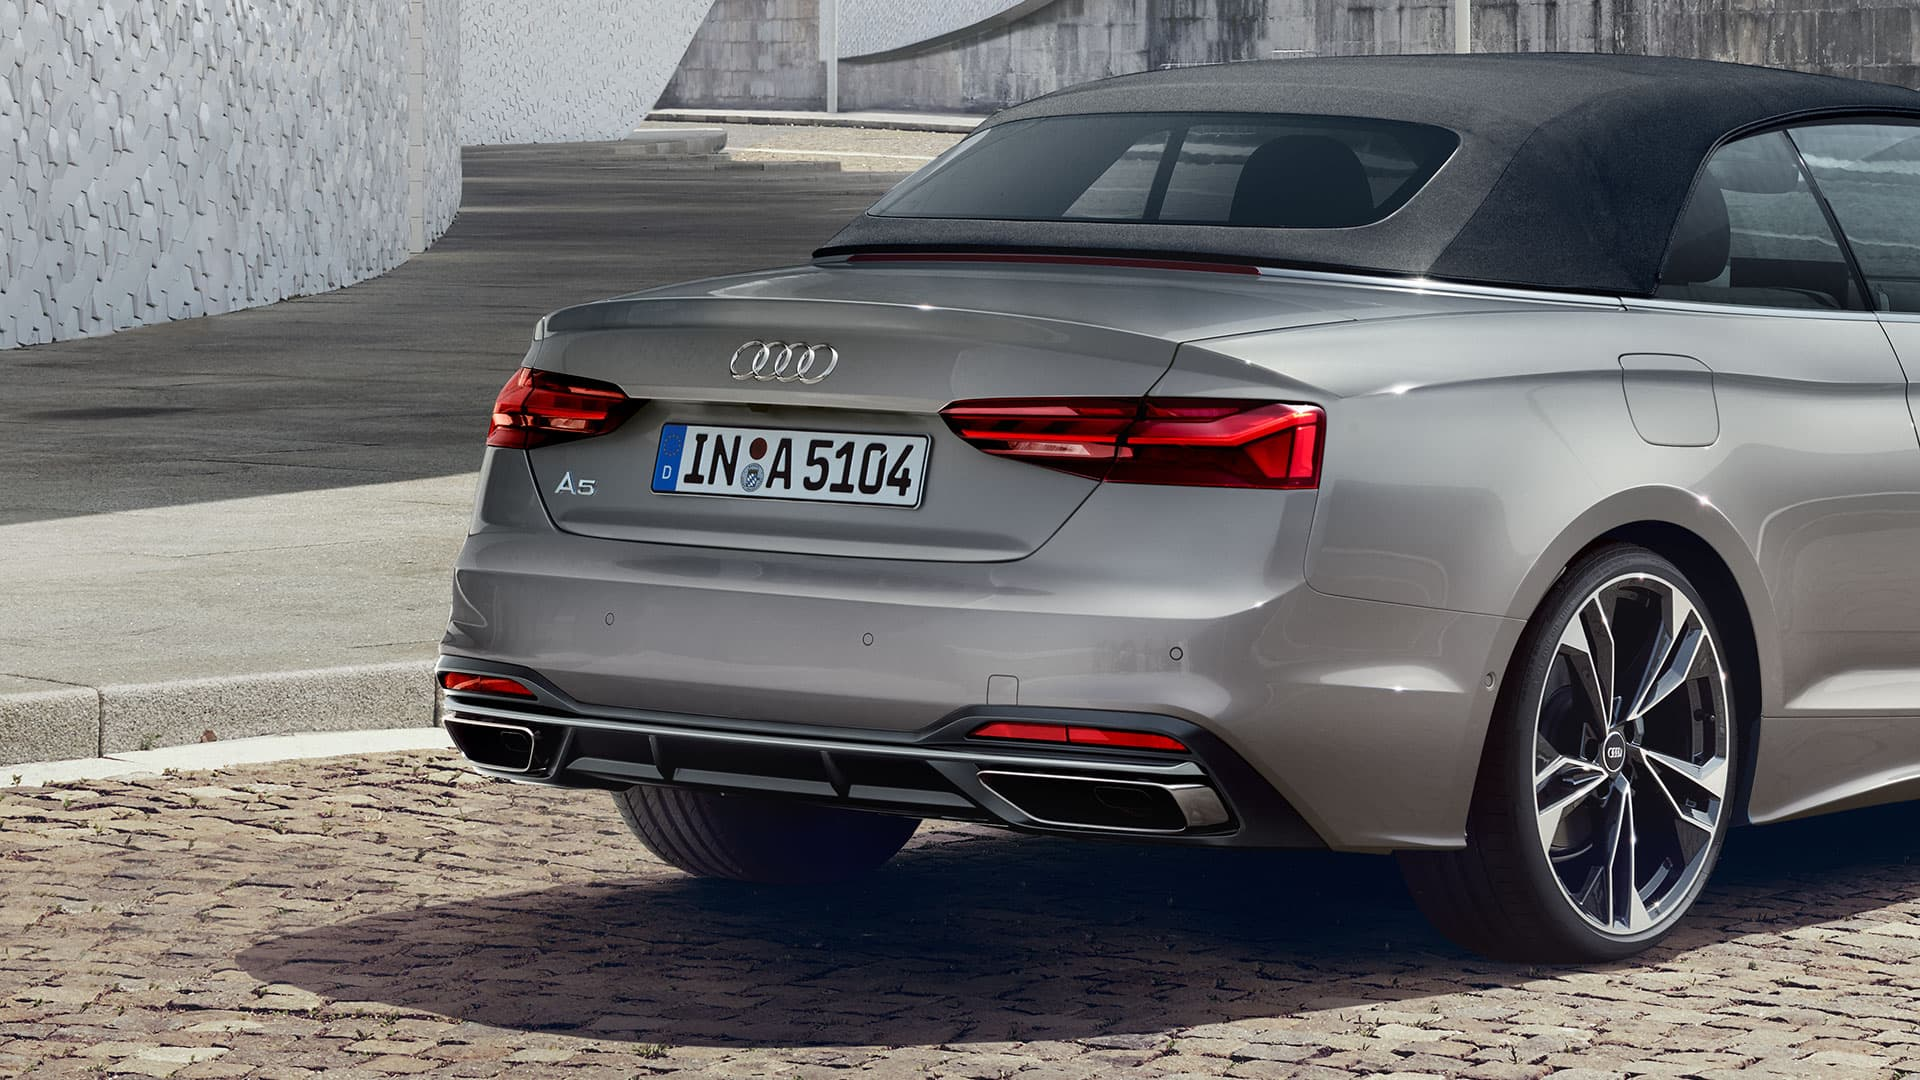 Rear view Audi A5 Cabriolet